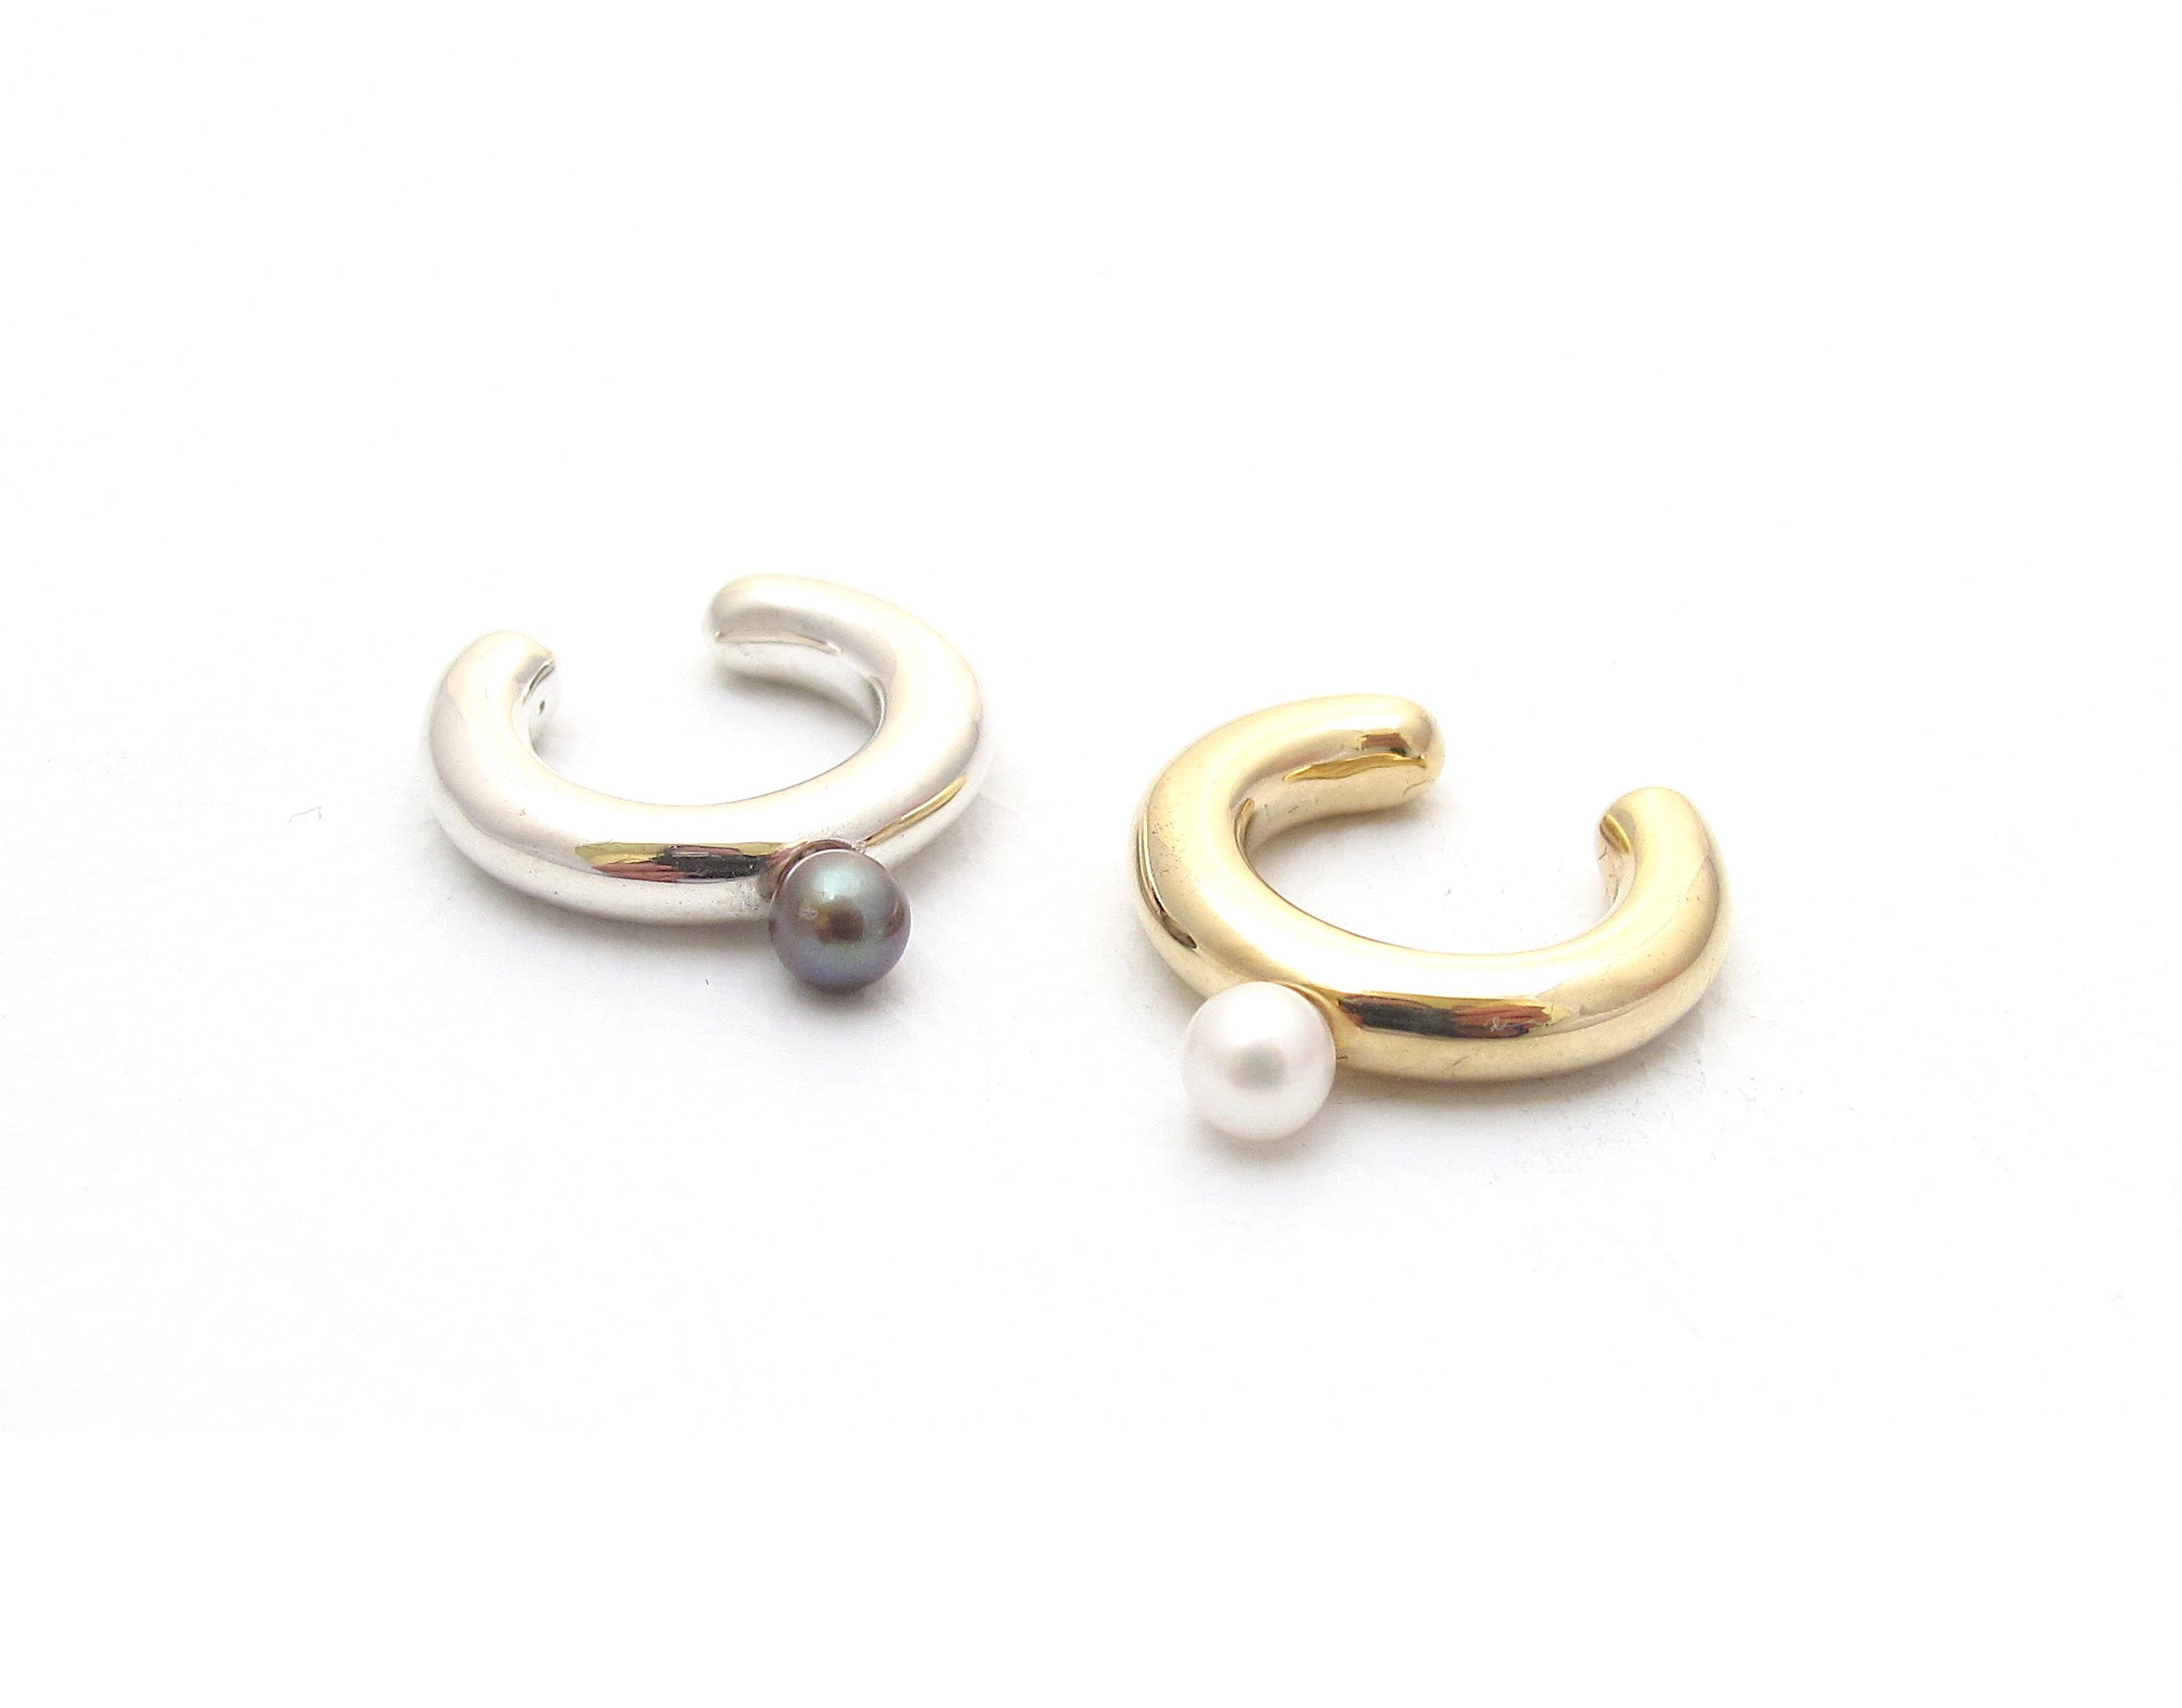 Pebble Ear Cuff, pearl